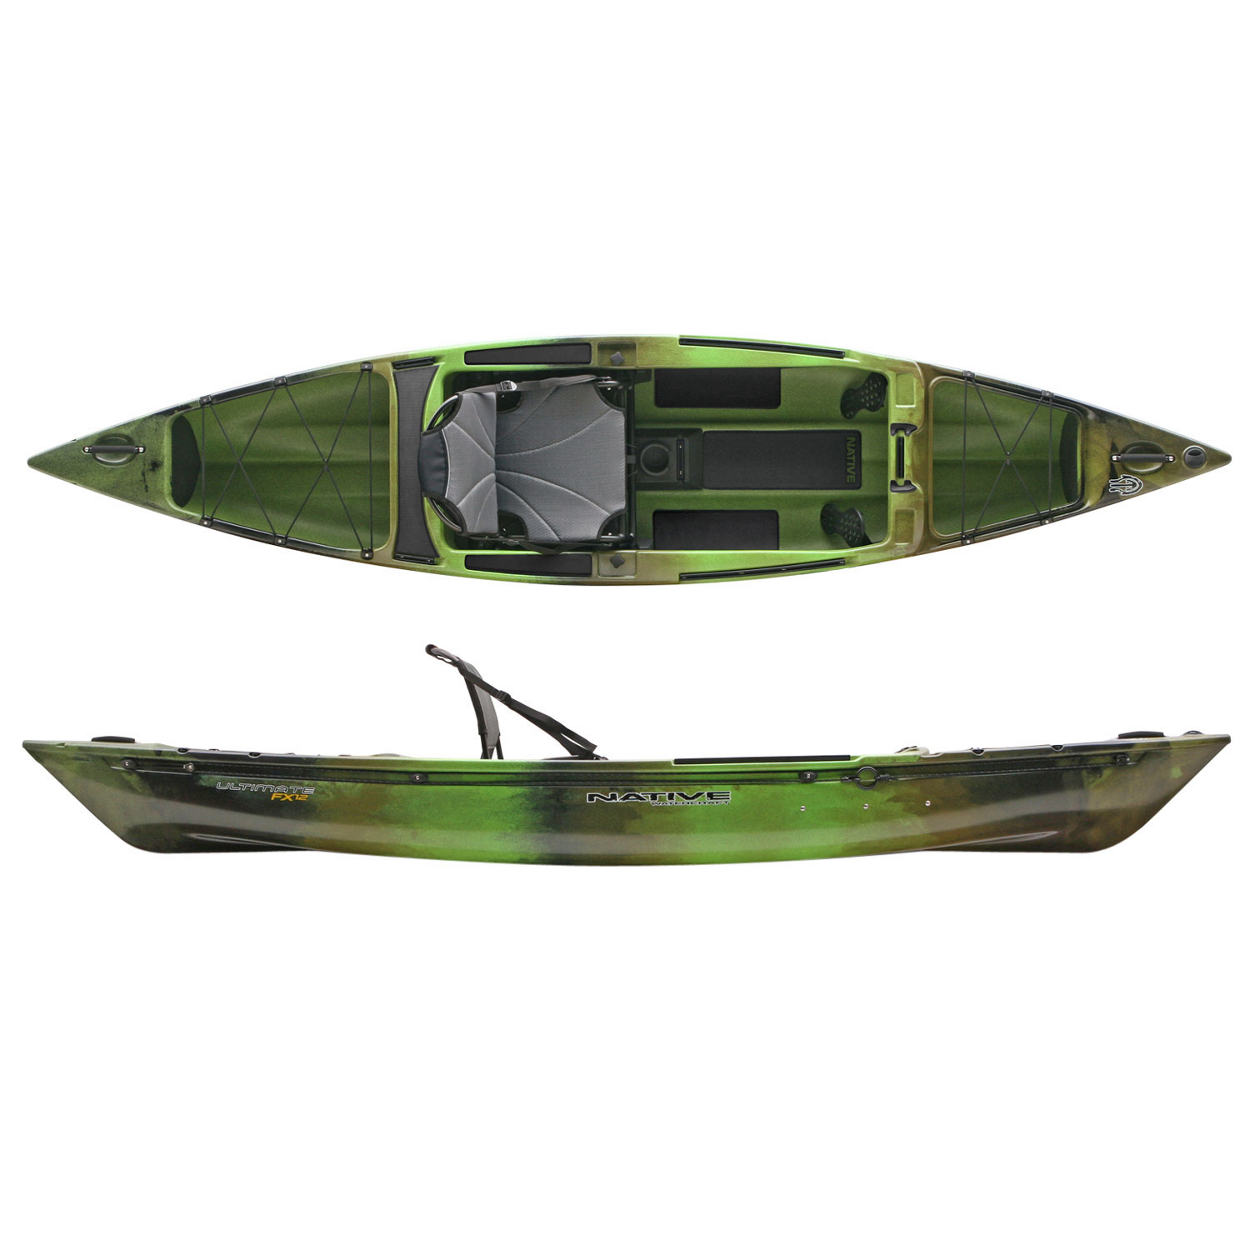 Canoes & Canoe Gear for Sale at Austin Kayak - ACK